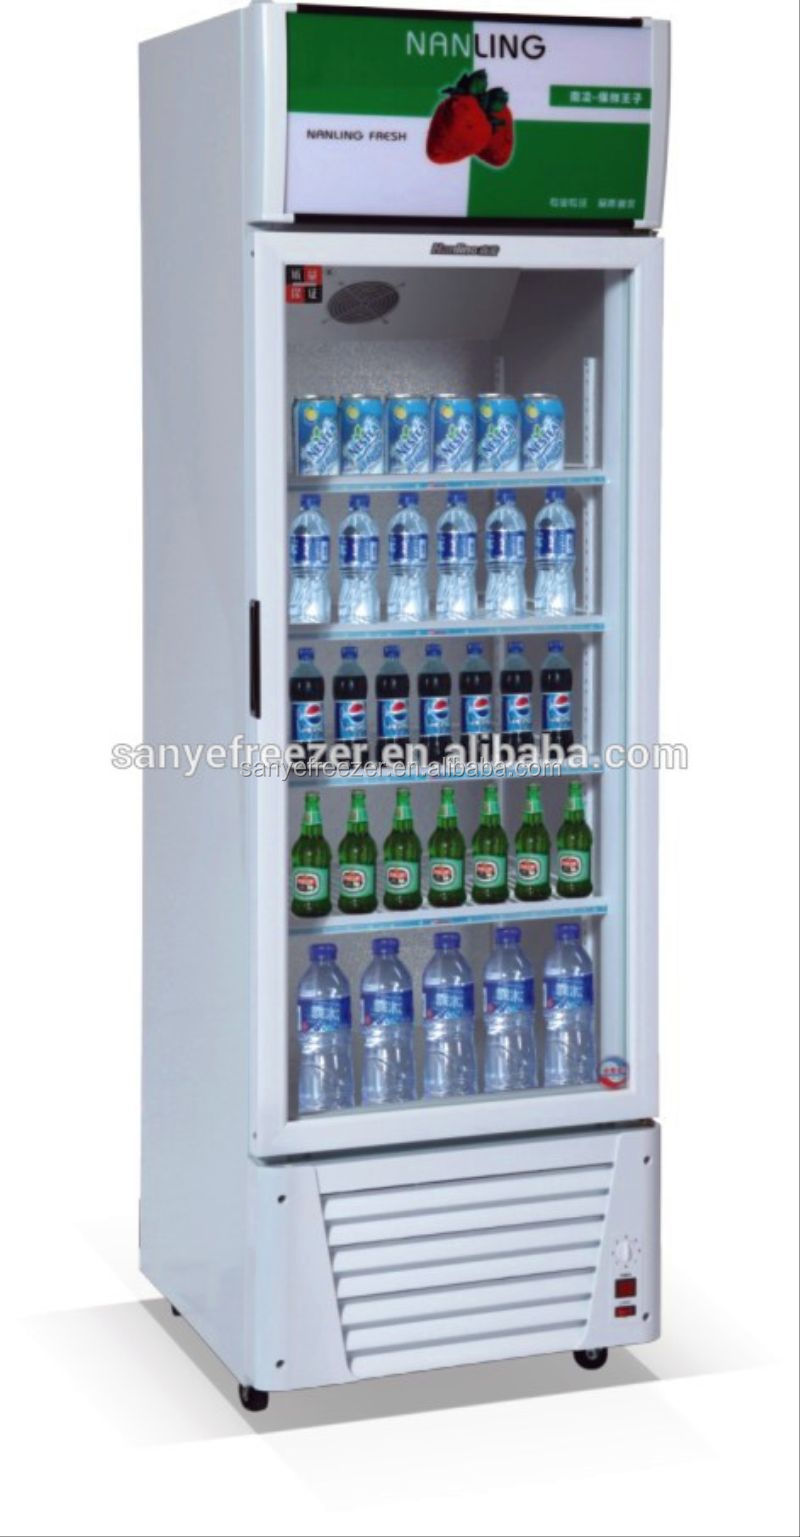 Sanye high quality best sale quick freezing haier refrigerator wine cooler with CE certification